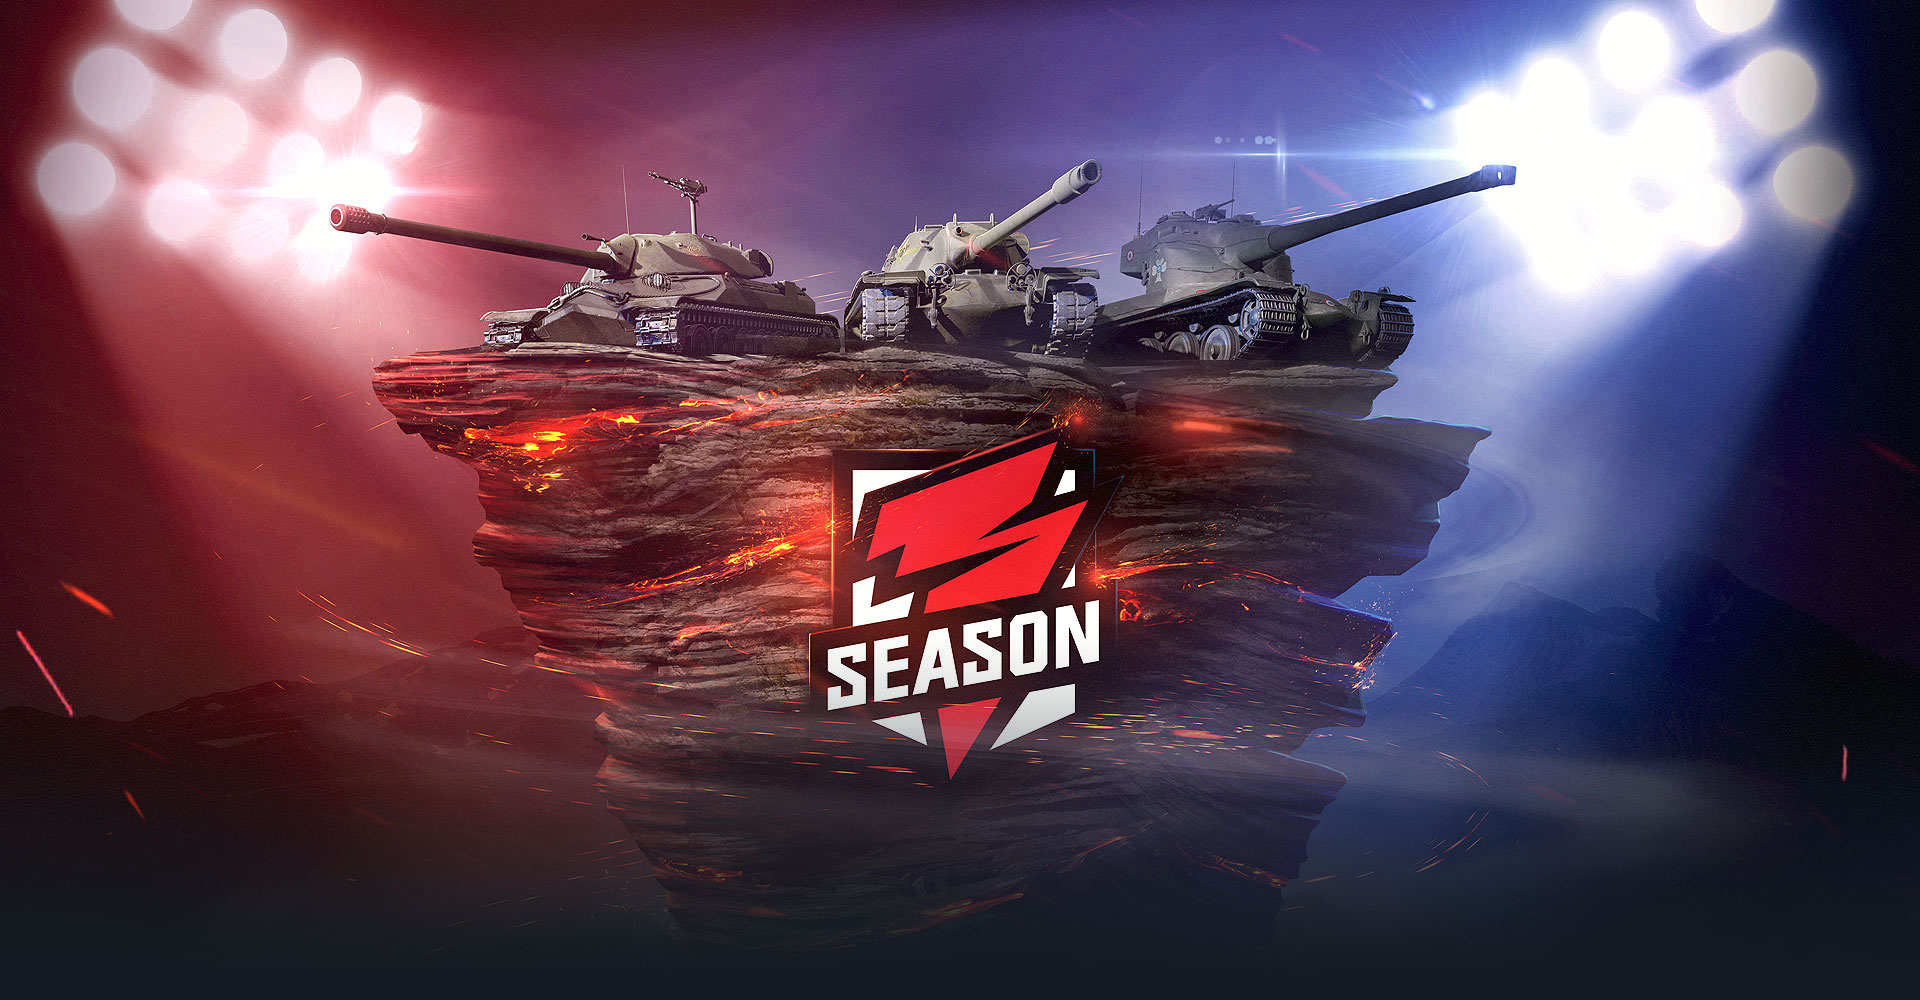 Home | World of Tanks Blitz